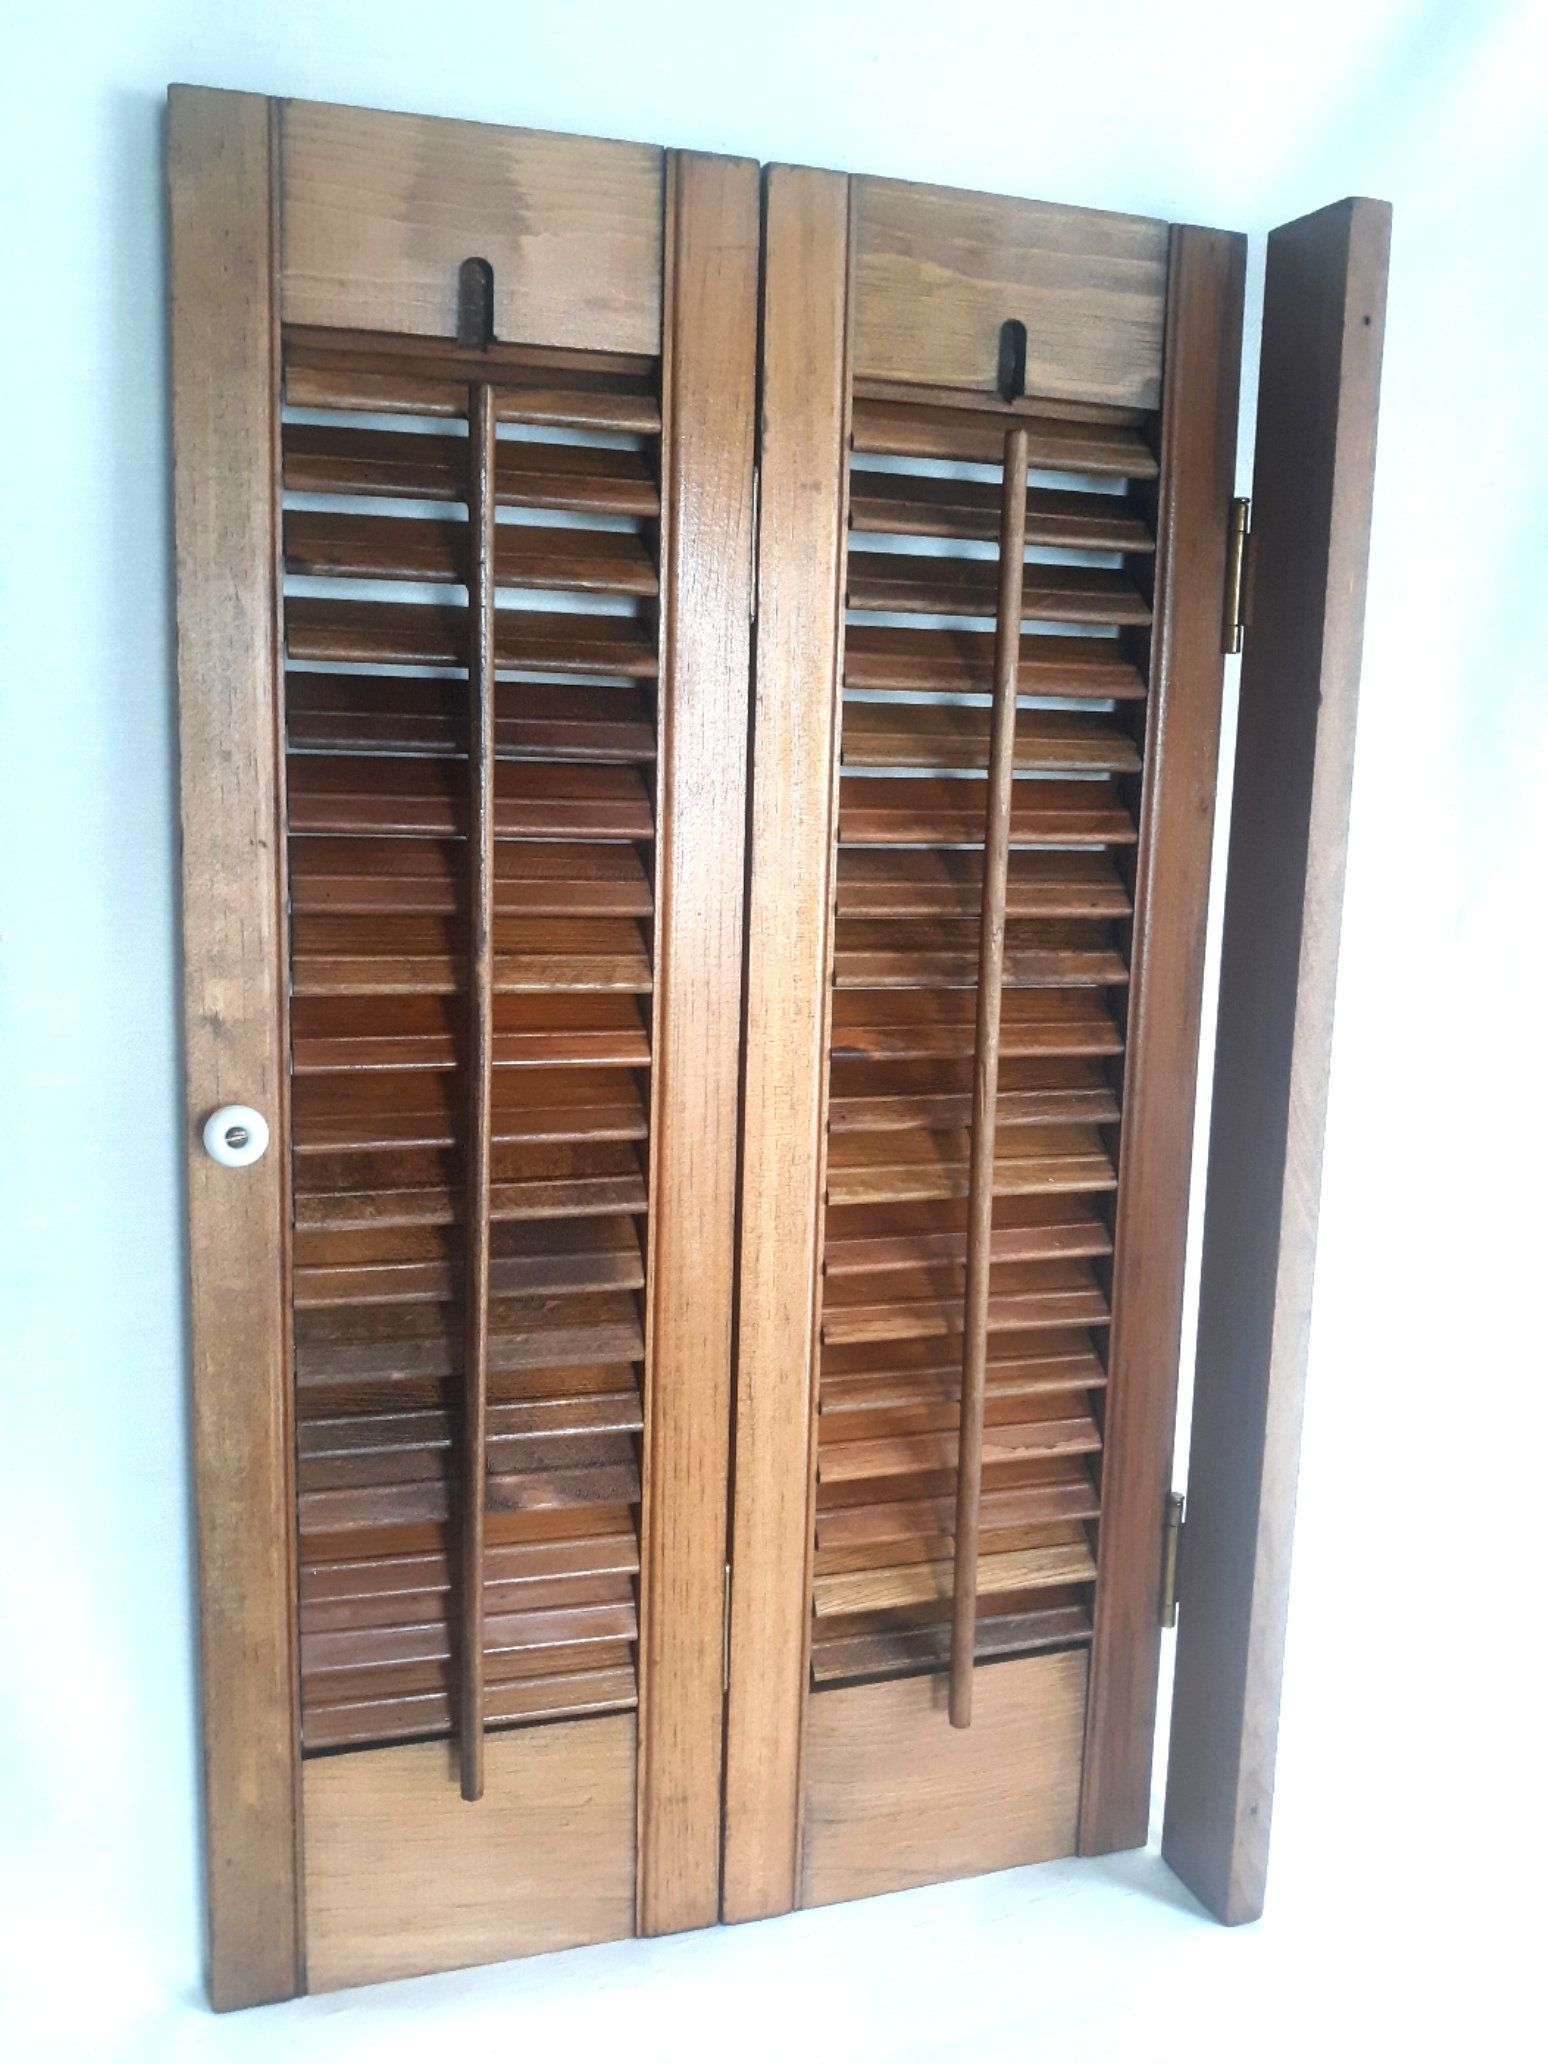 Vintage Wooden Louvered House Window Indoor Shutter 2 Panels Connected Hinges Hang Strip Adjustable Slat Wooden Window Shutters Wooden Shutters Indoor Shutters